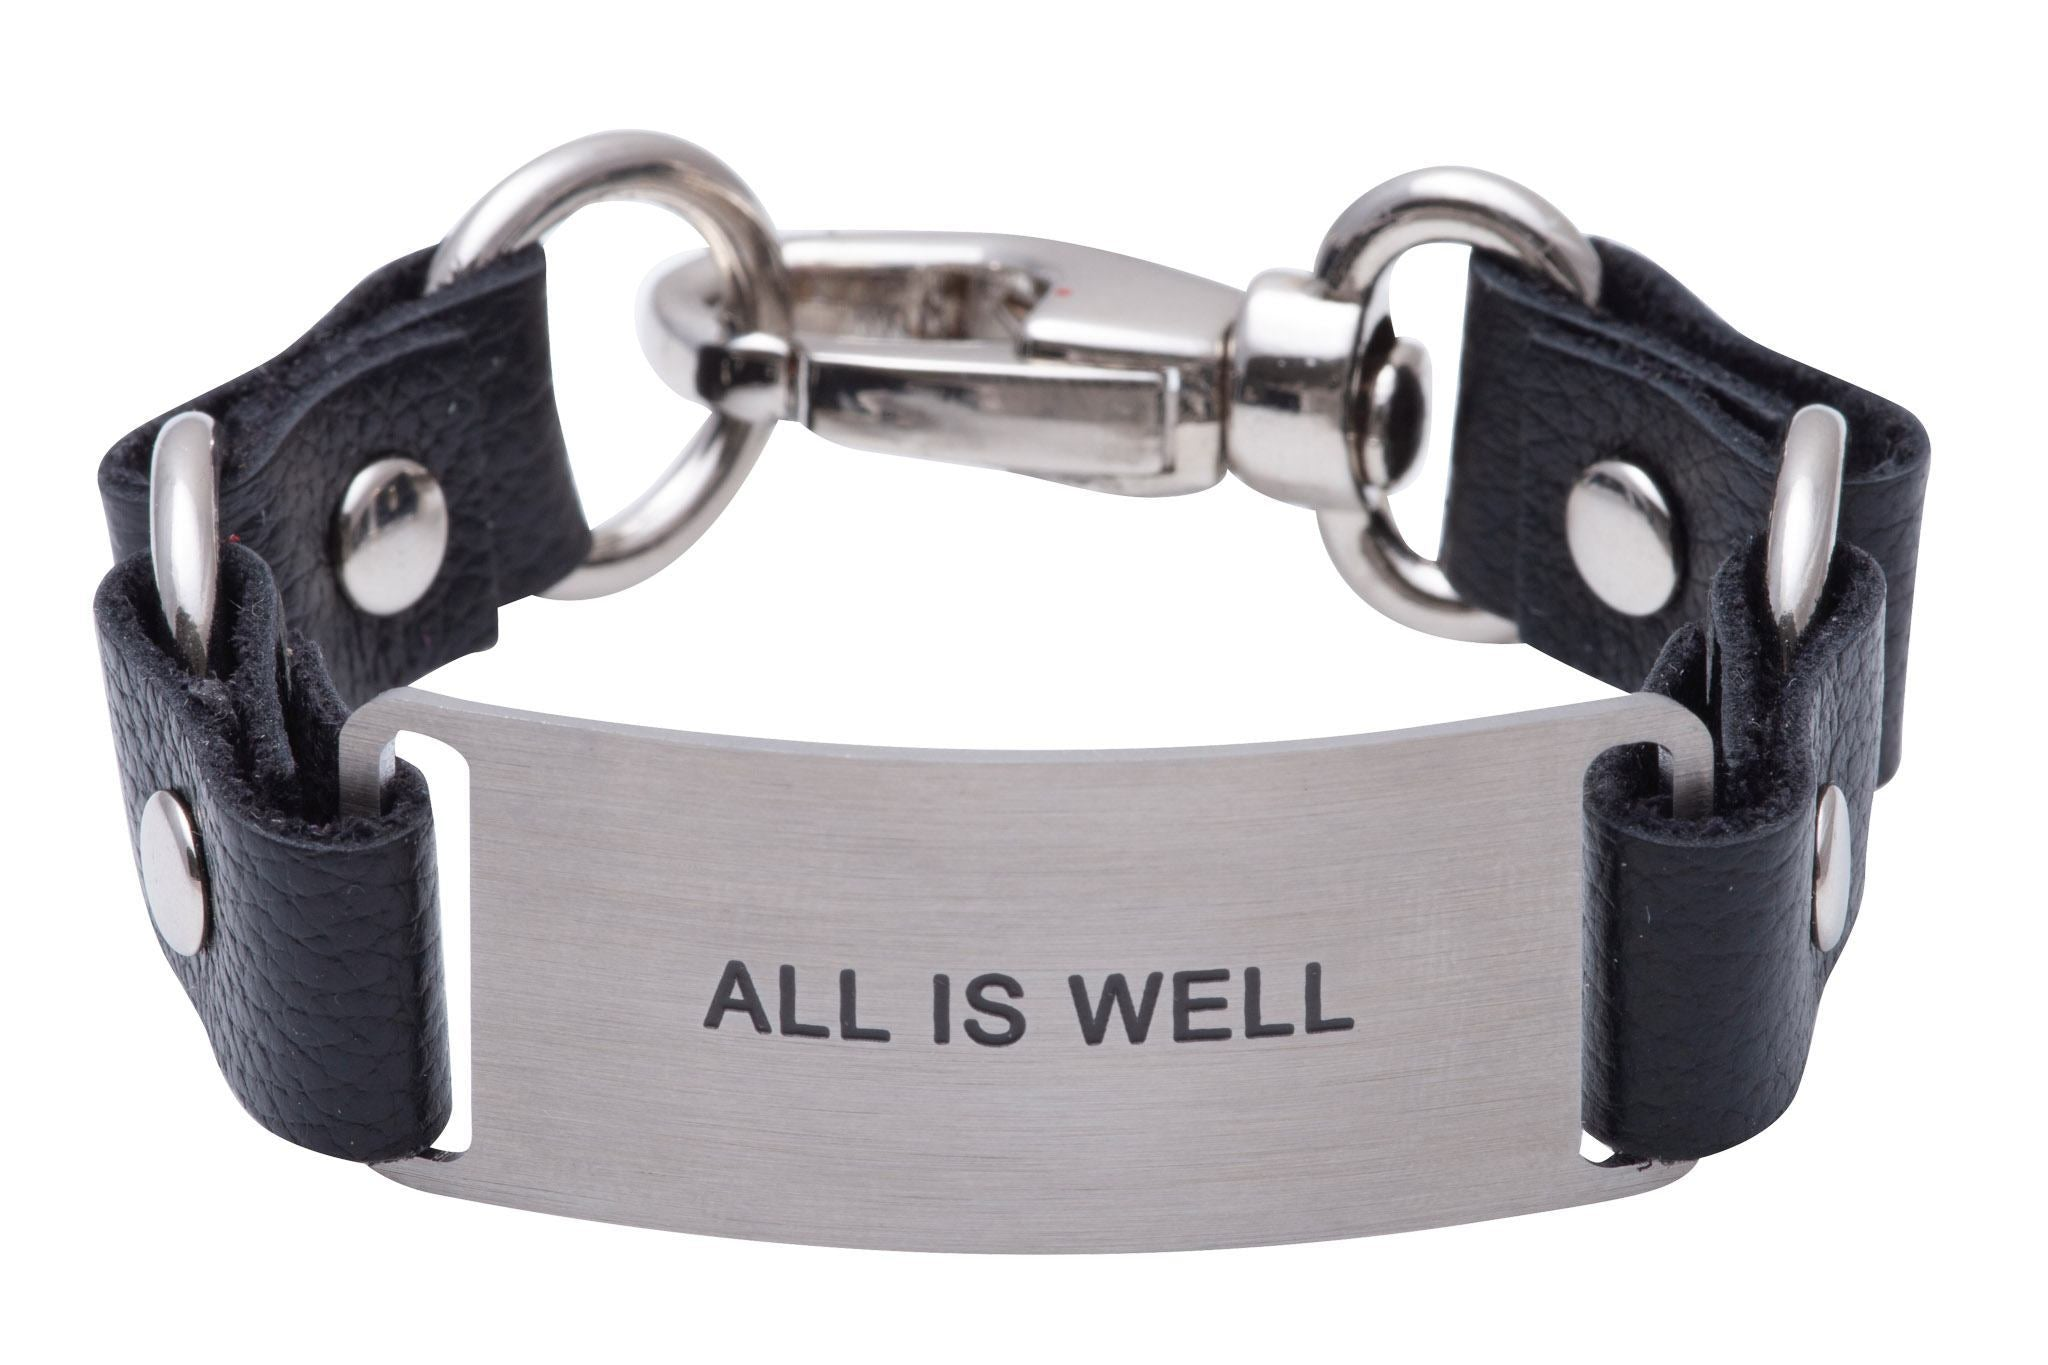 Message Bracelet Black Leather All is Well